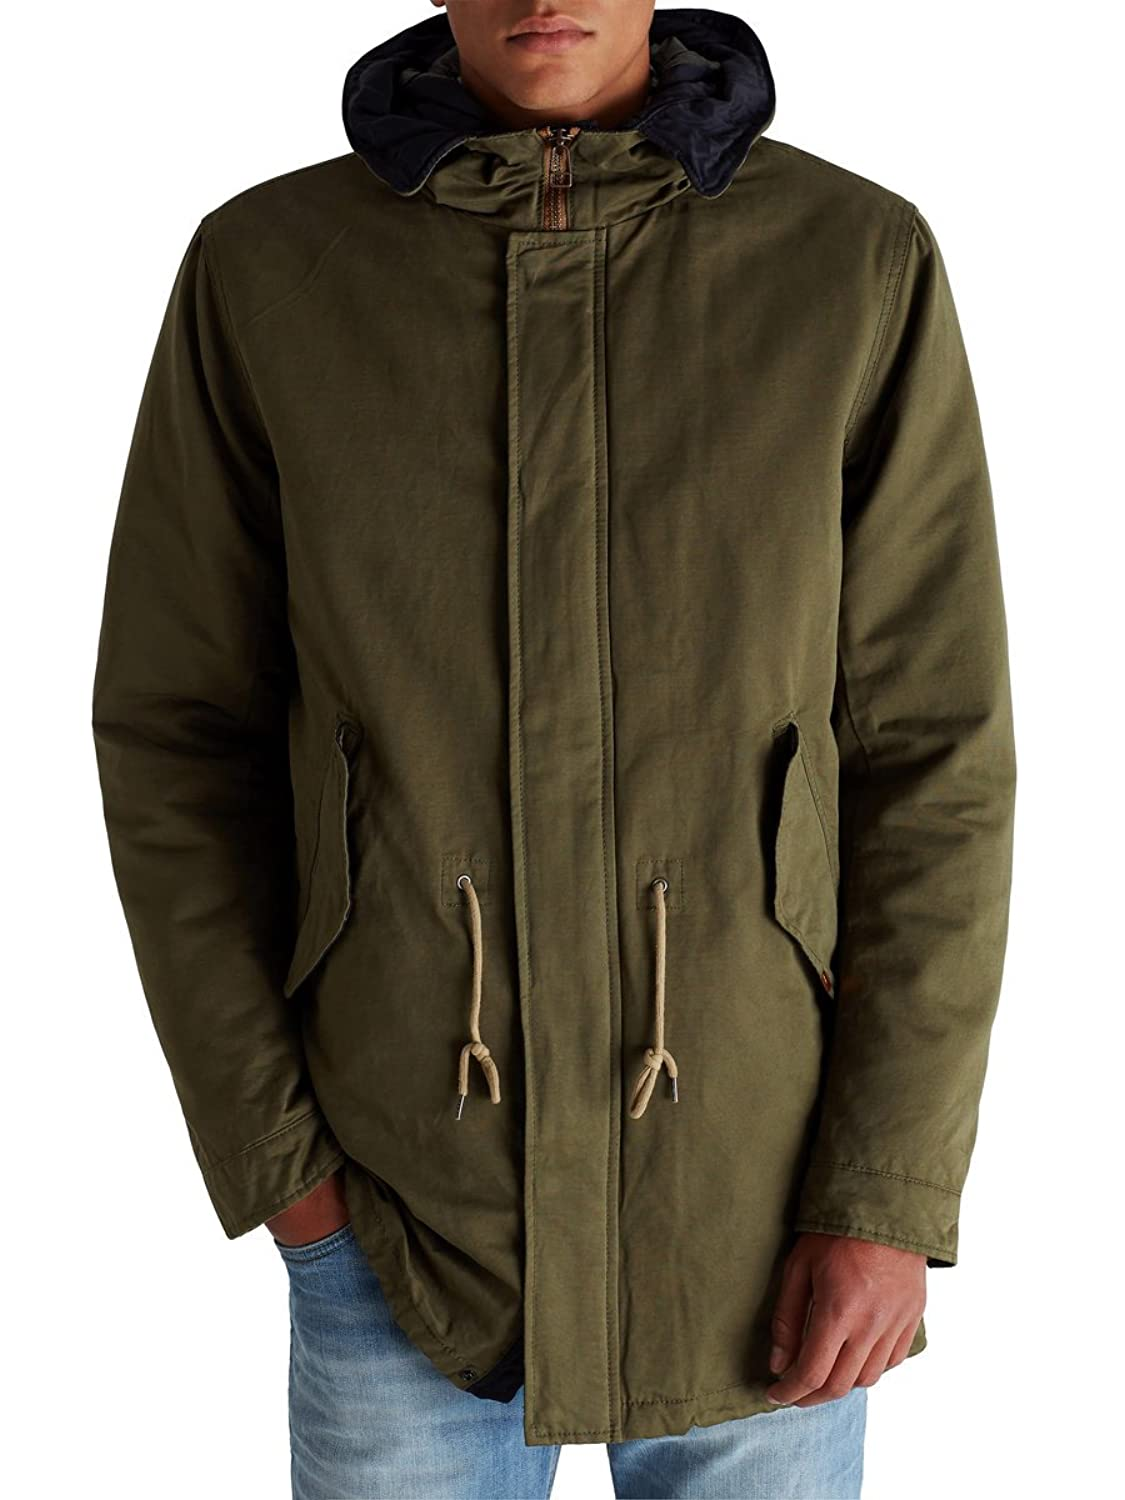 JACK JONES - Men's hooded jacket craig parka xxl olive green